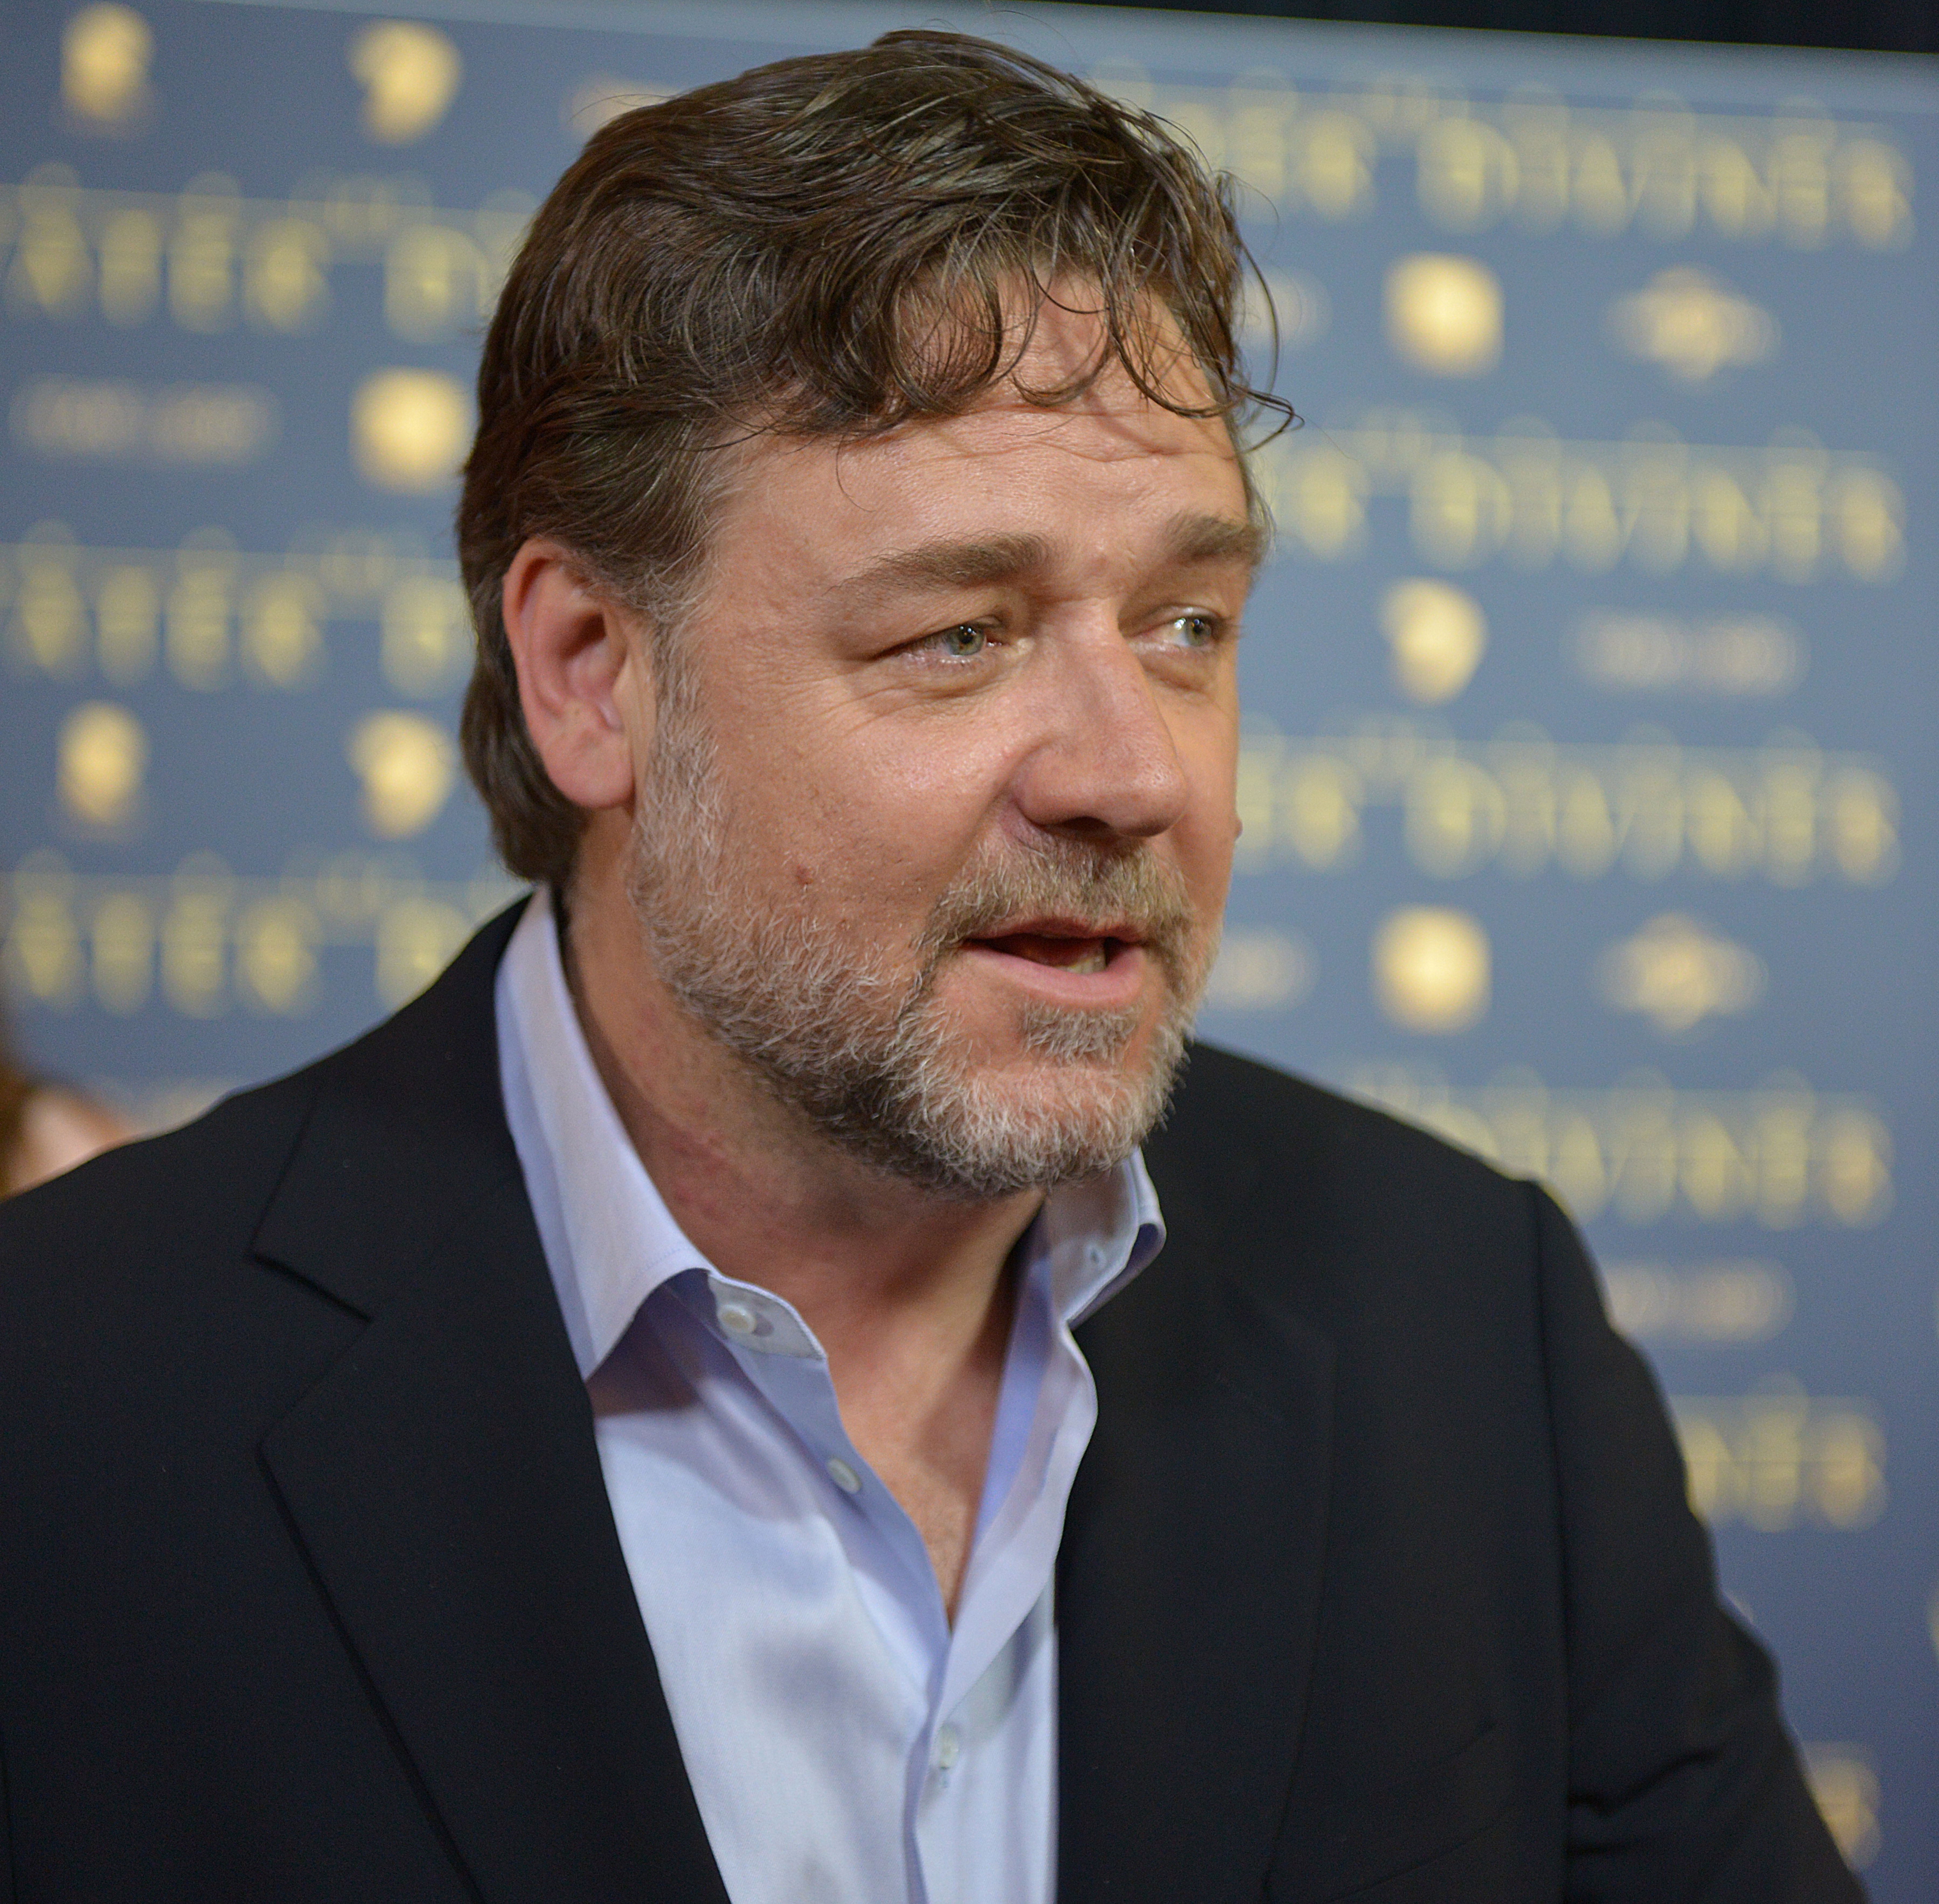 Russell Crowe arrives for the premiere of 'The Water Diviner' in Melbourne, Australia on Dec. 3, 2014.